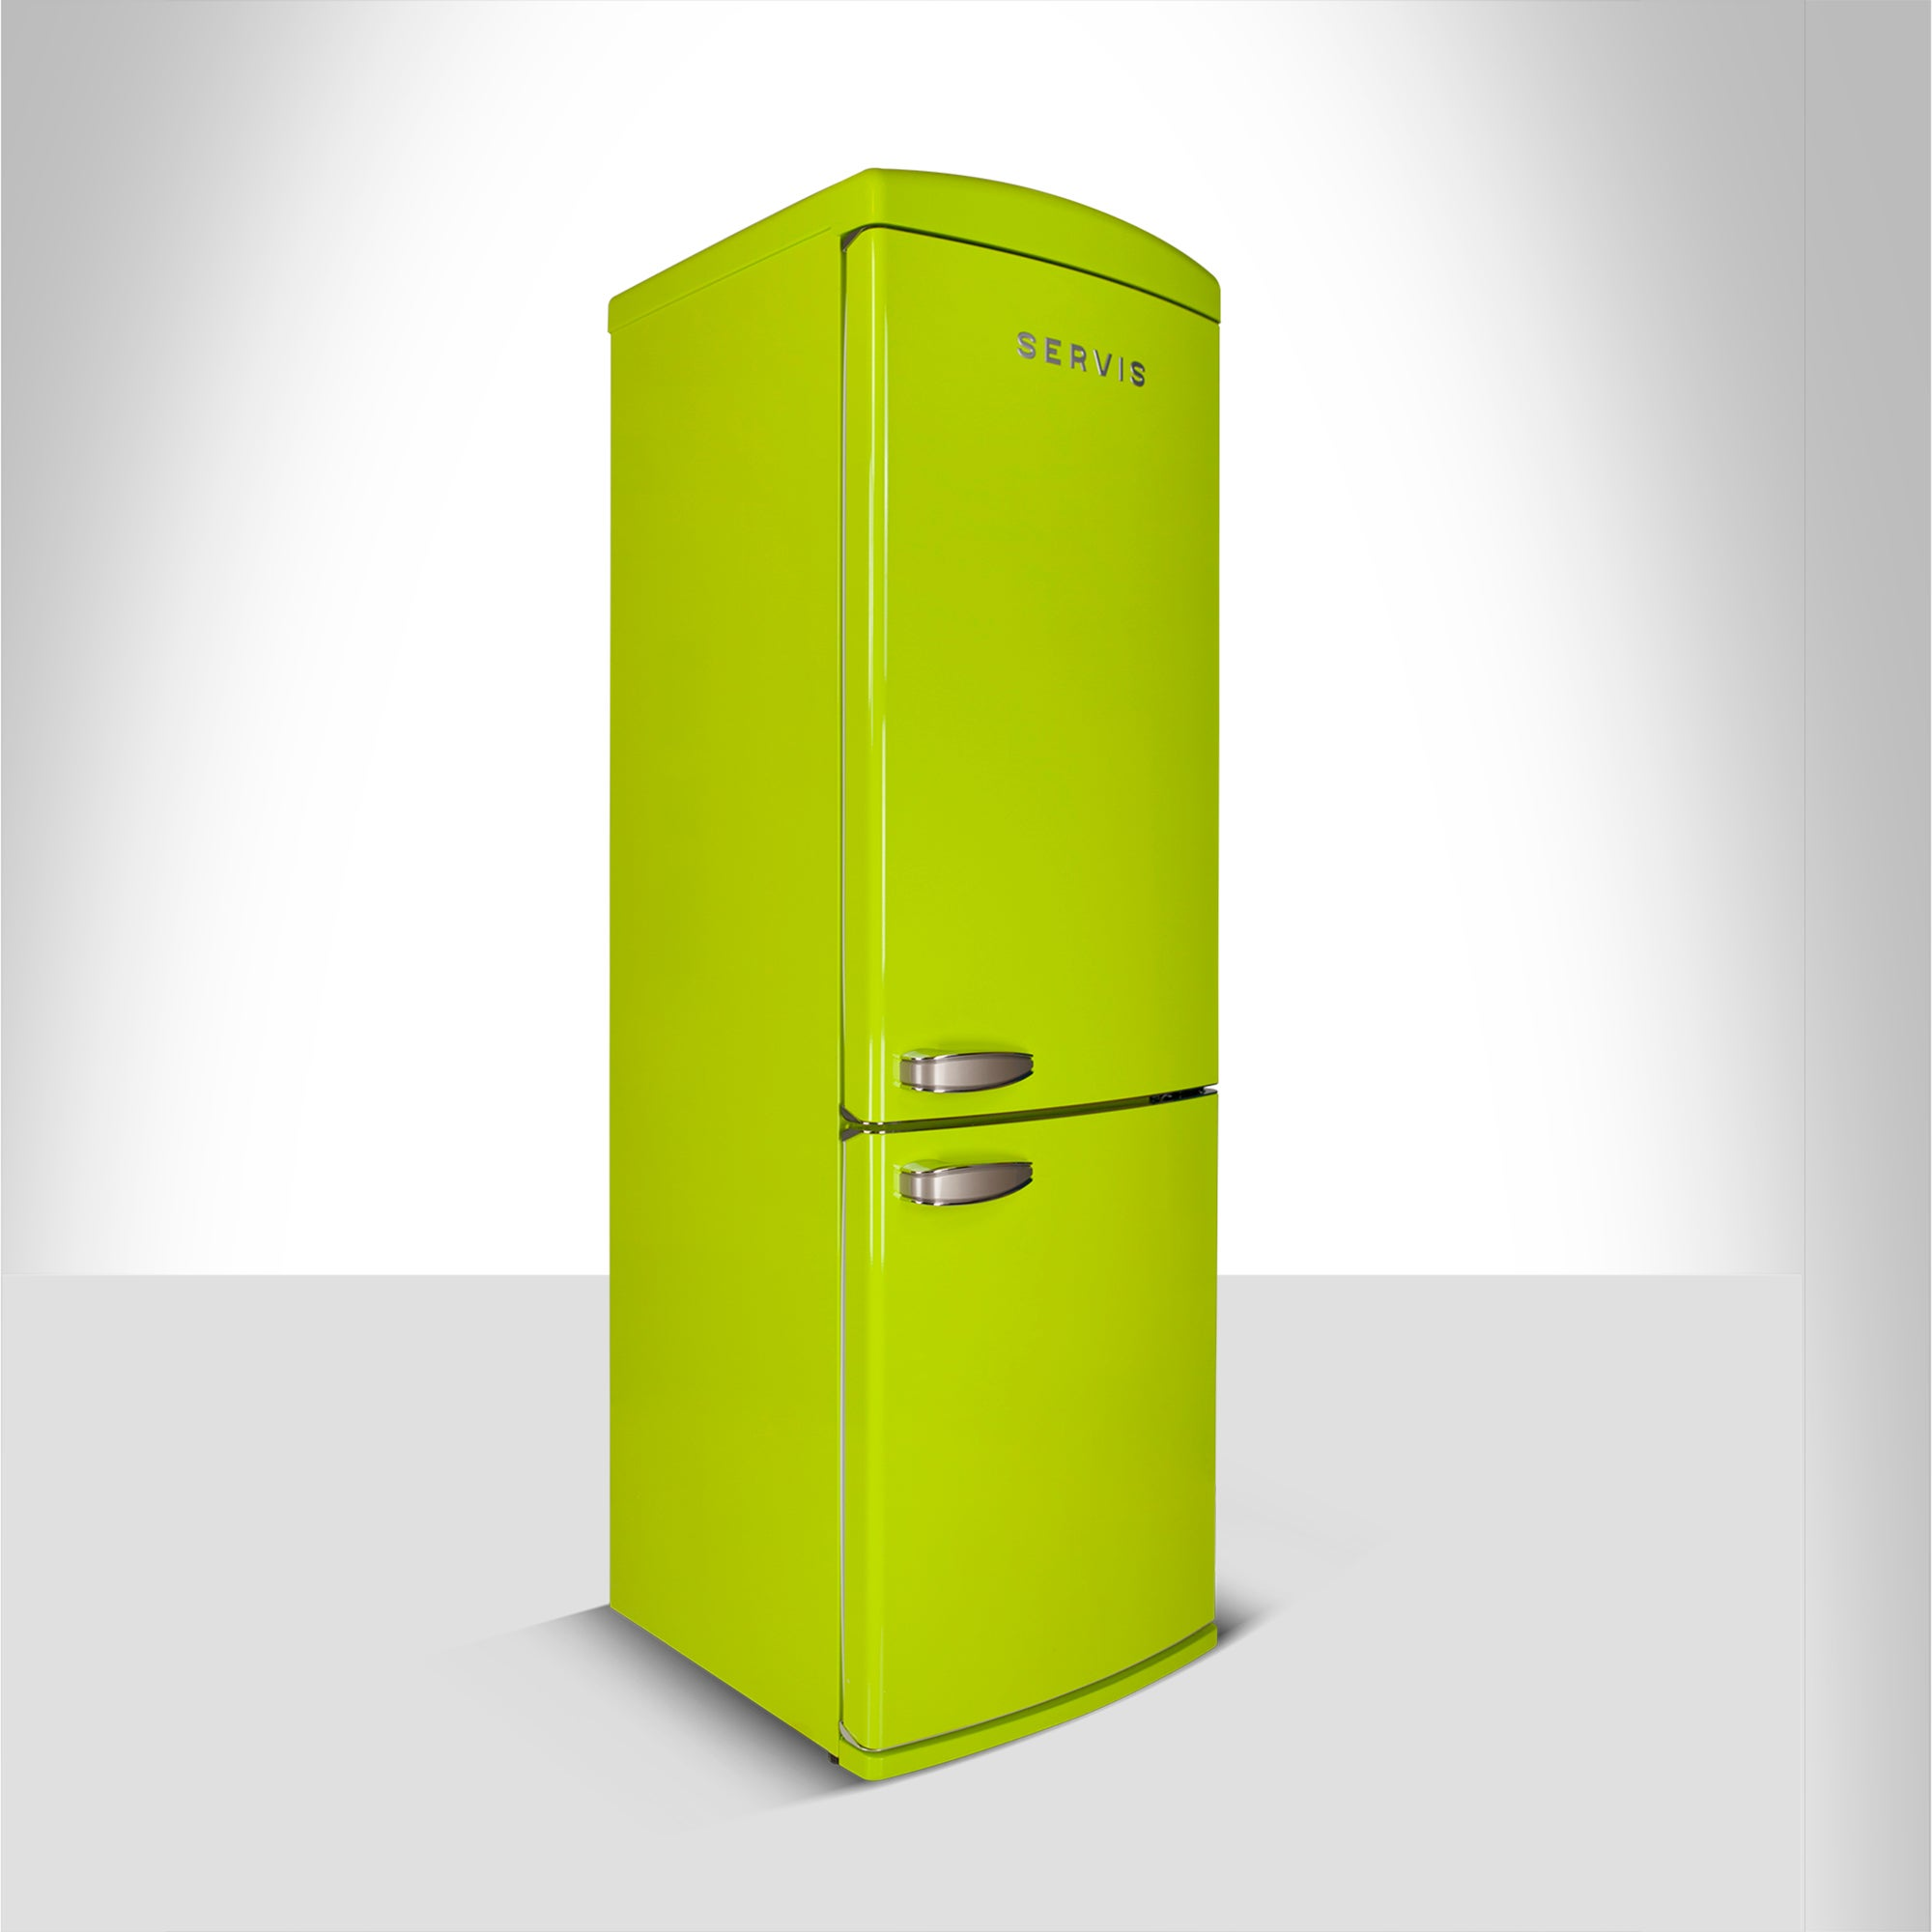 Servis C60185NFPT Green Retro Style Fridge Freezer